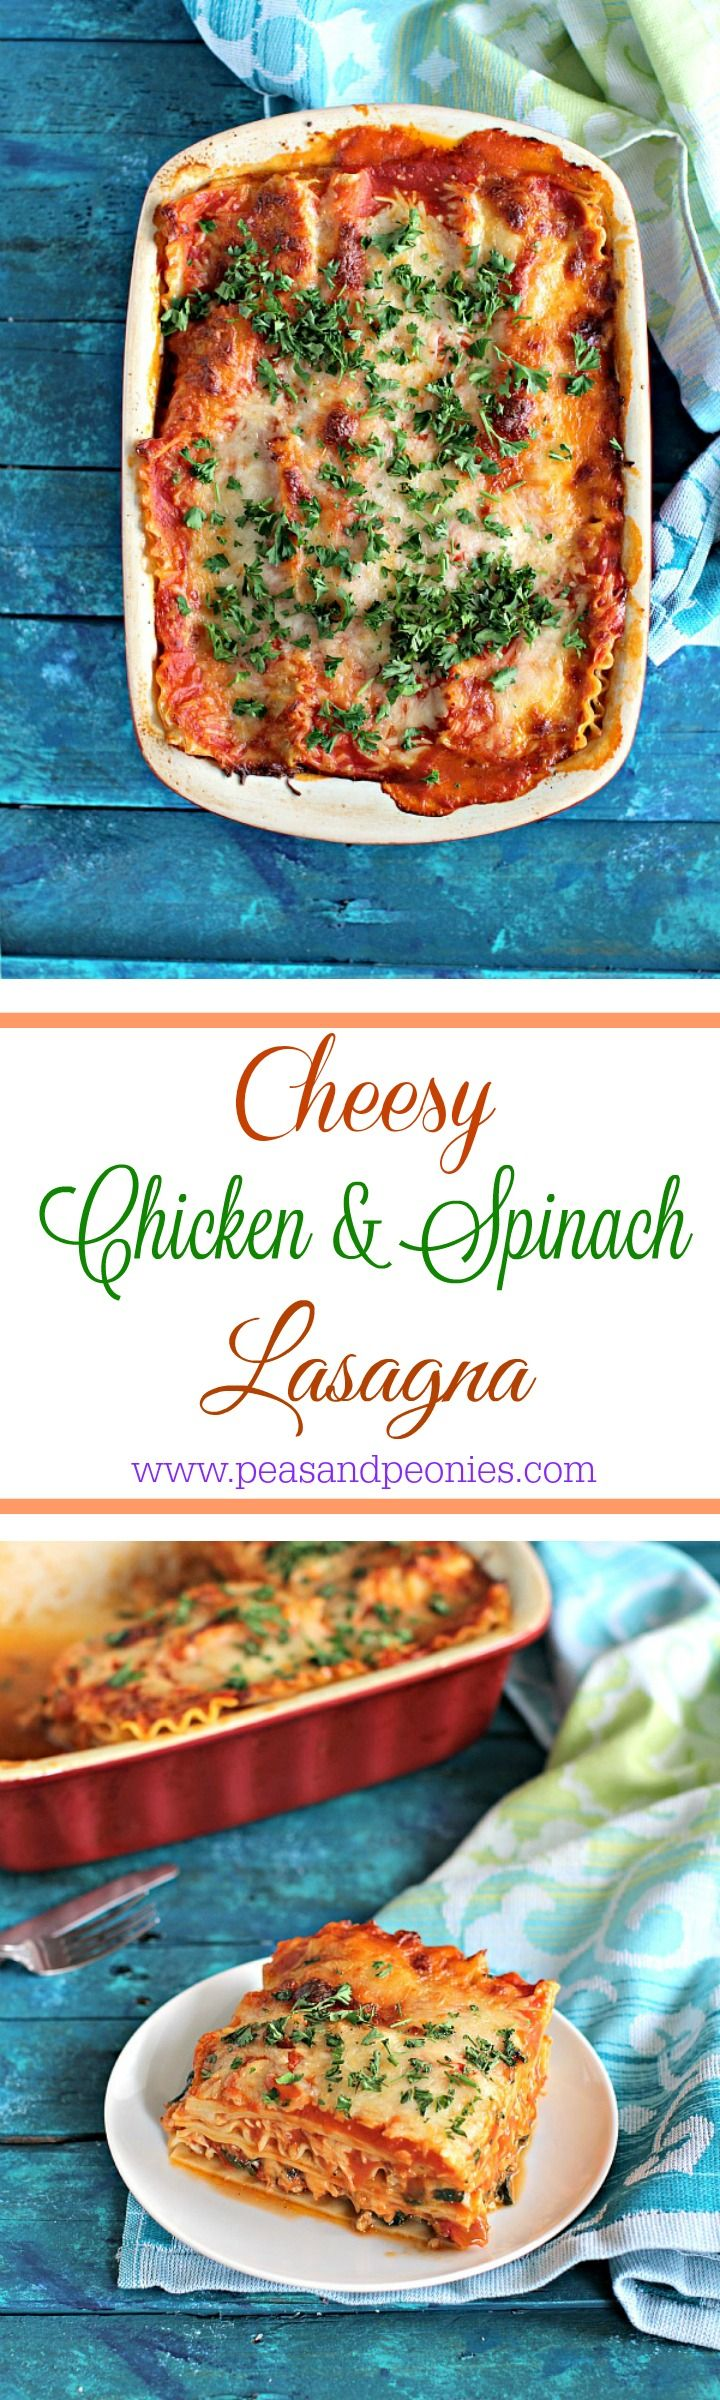 Best Chicken Spinach Lasagna - My best chicken spinach lasagna is easy to make, loaded with lean chicken and spinach for a nutritional boost. Delicious, and stores well. Peas and Peonies